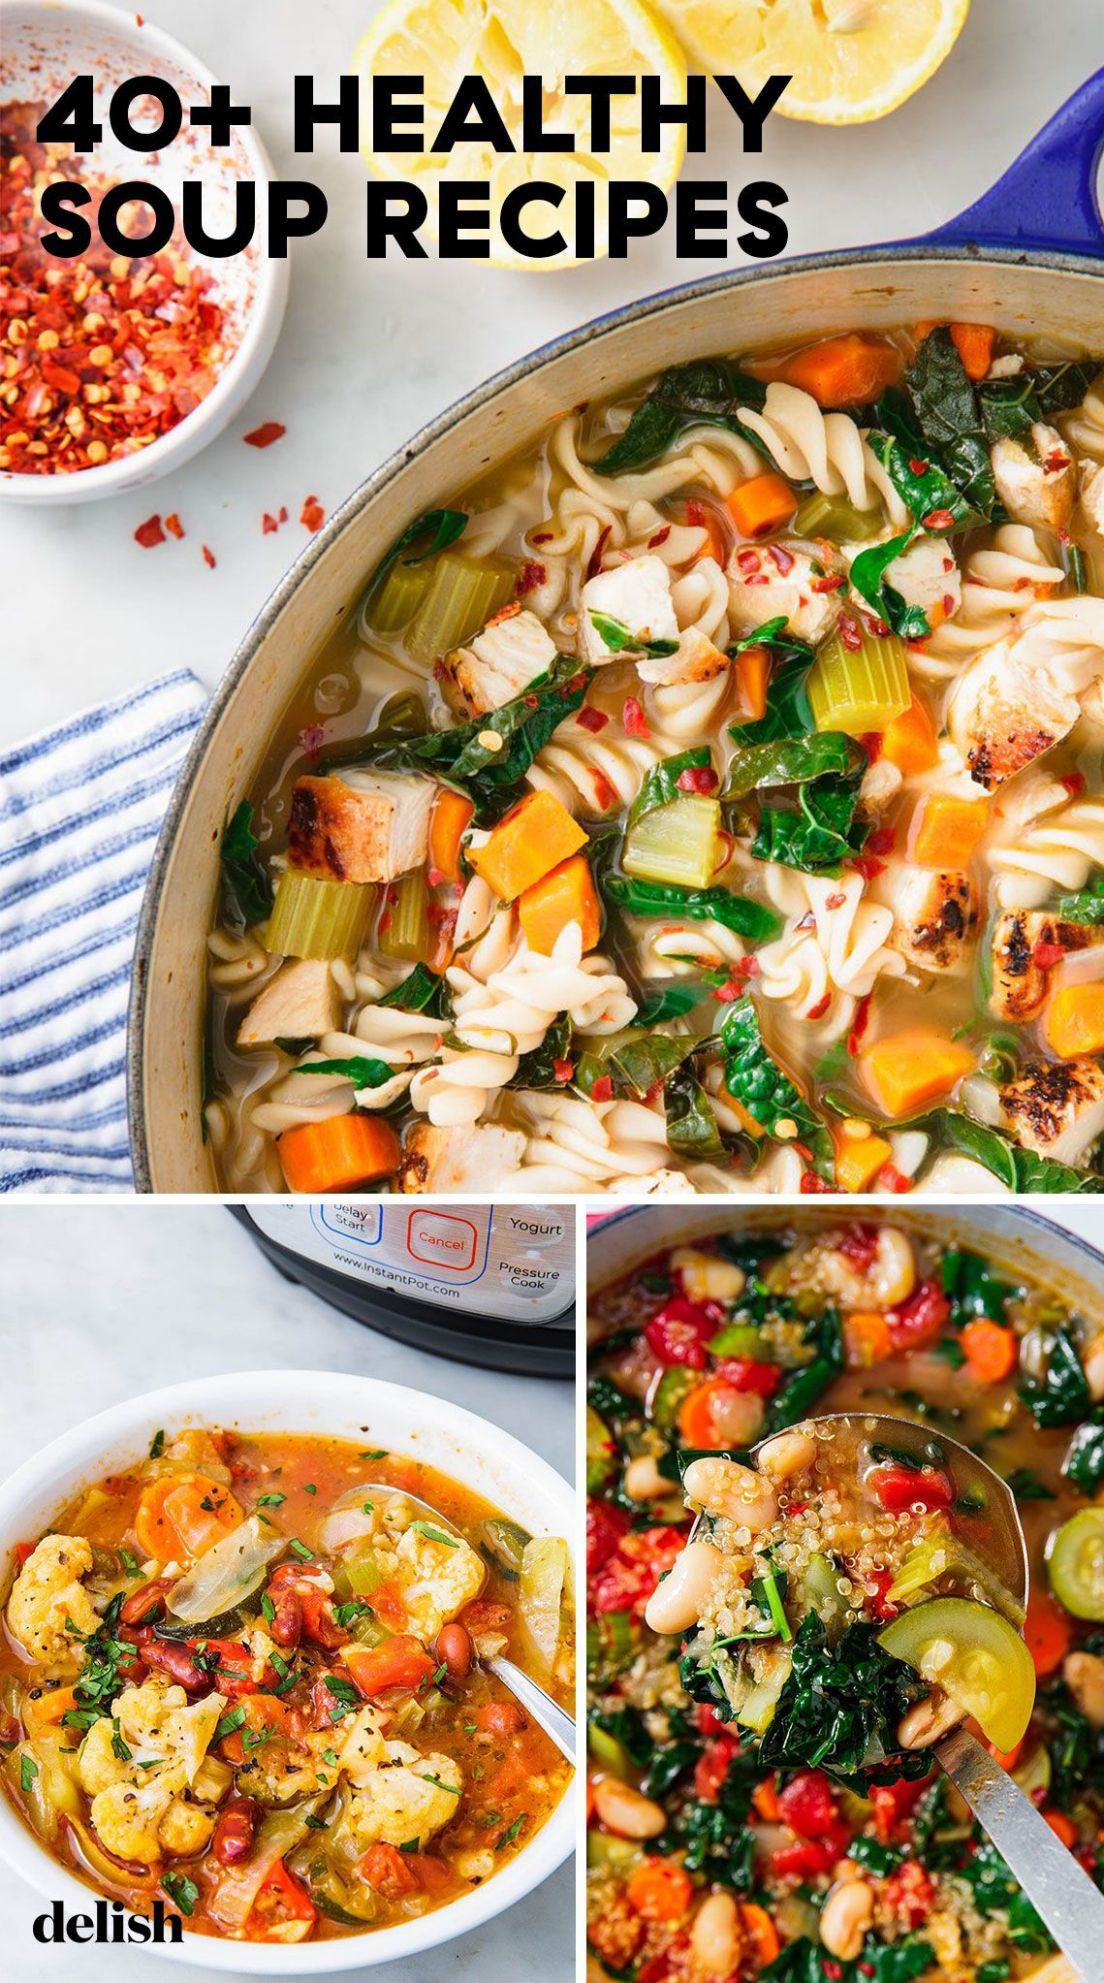 9+ Best Healthy Soup Recipes - Easy Ideas for Healthier Soups - Soup Recipes Delish